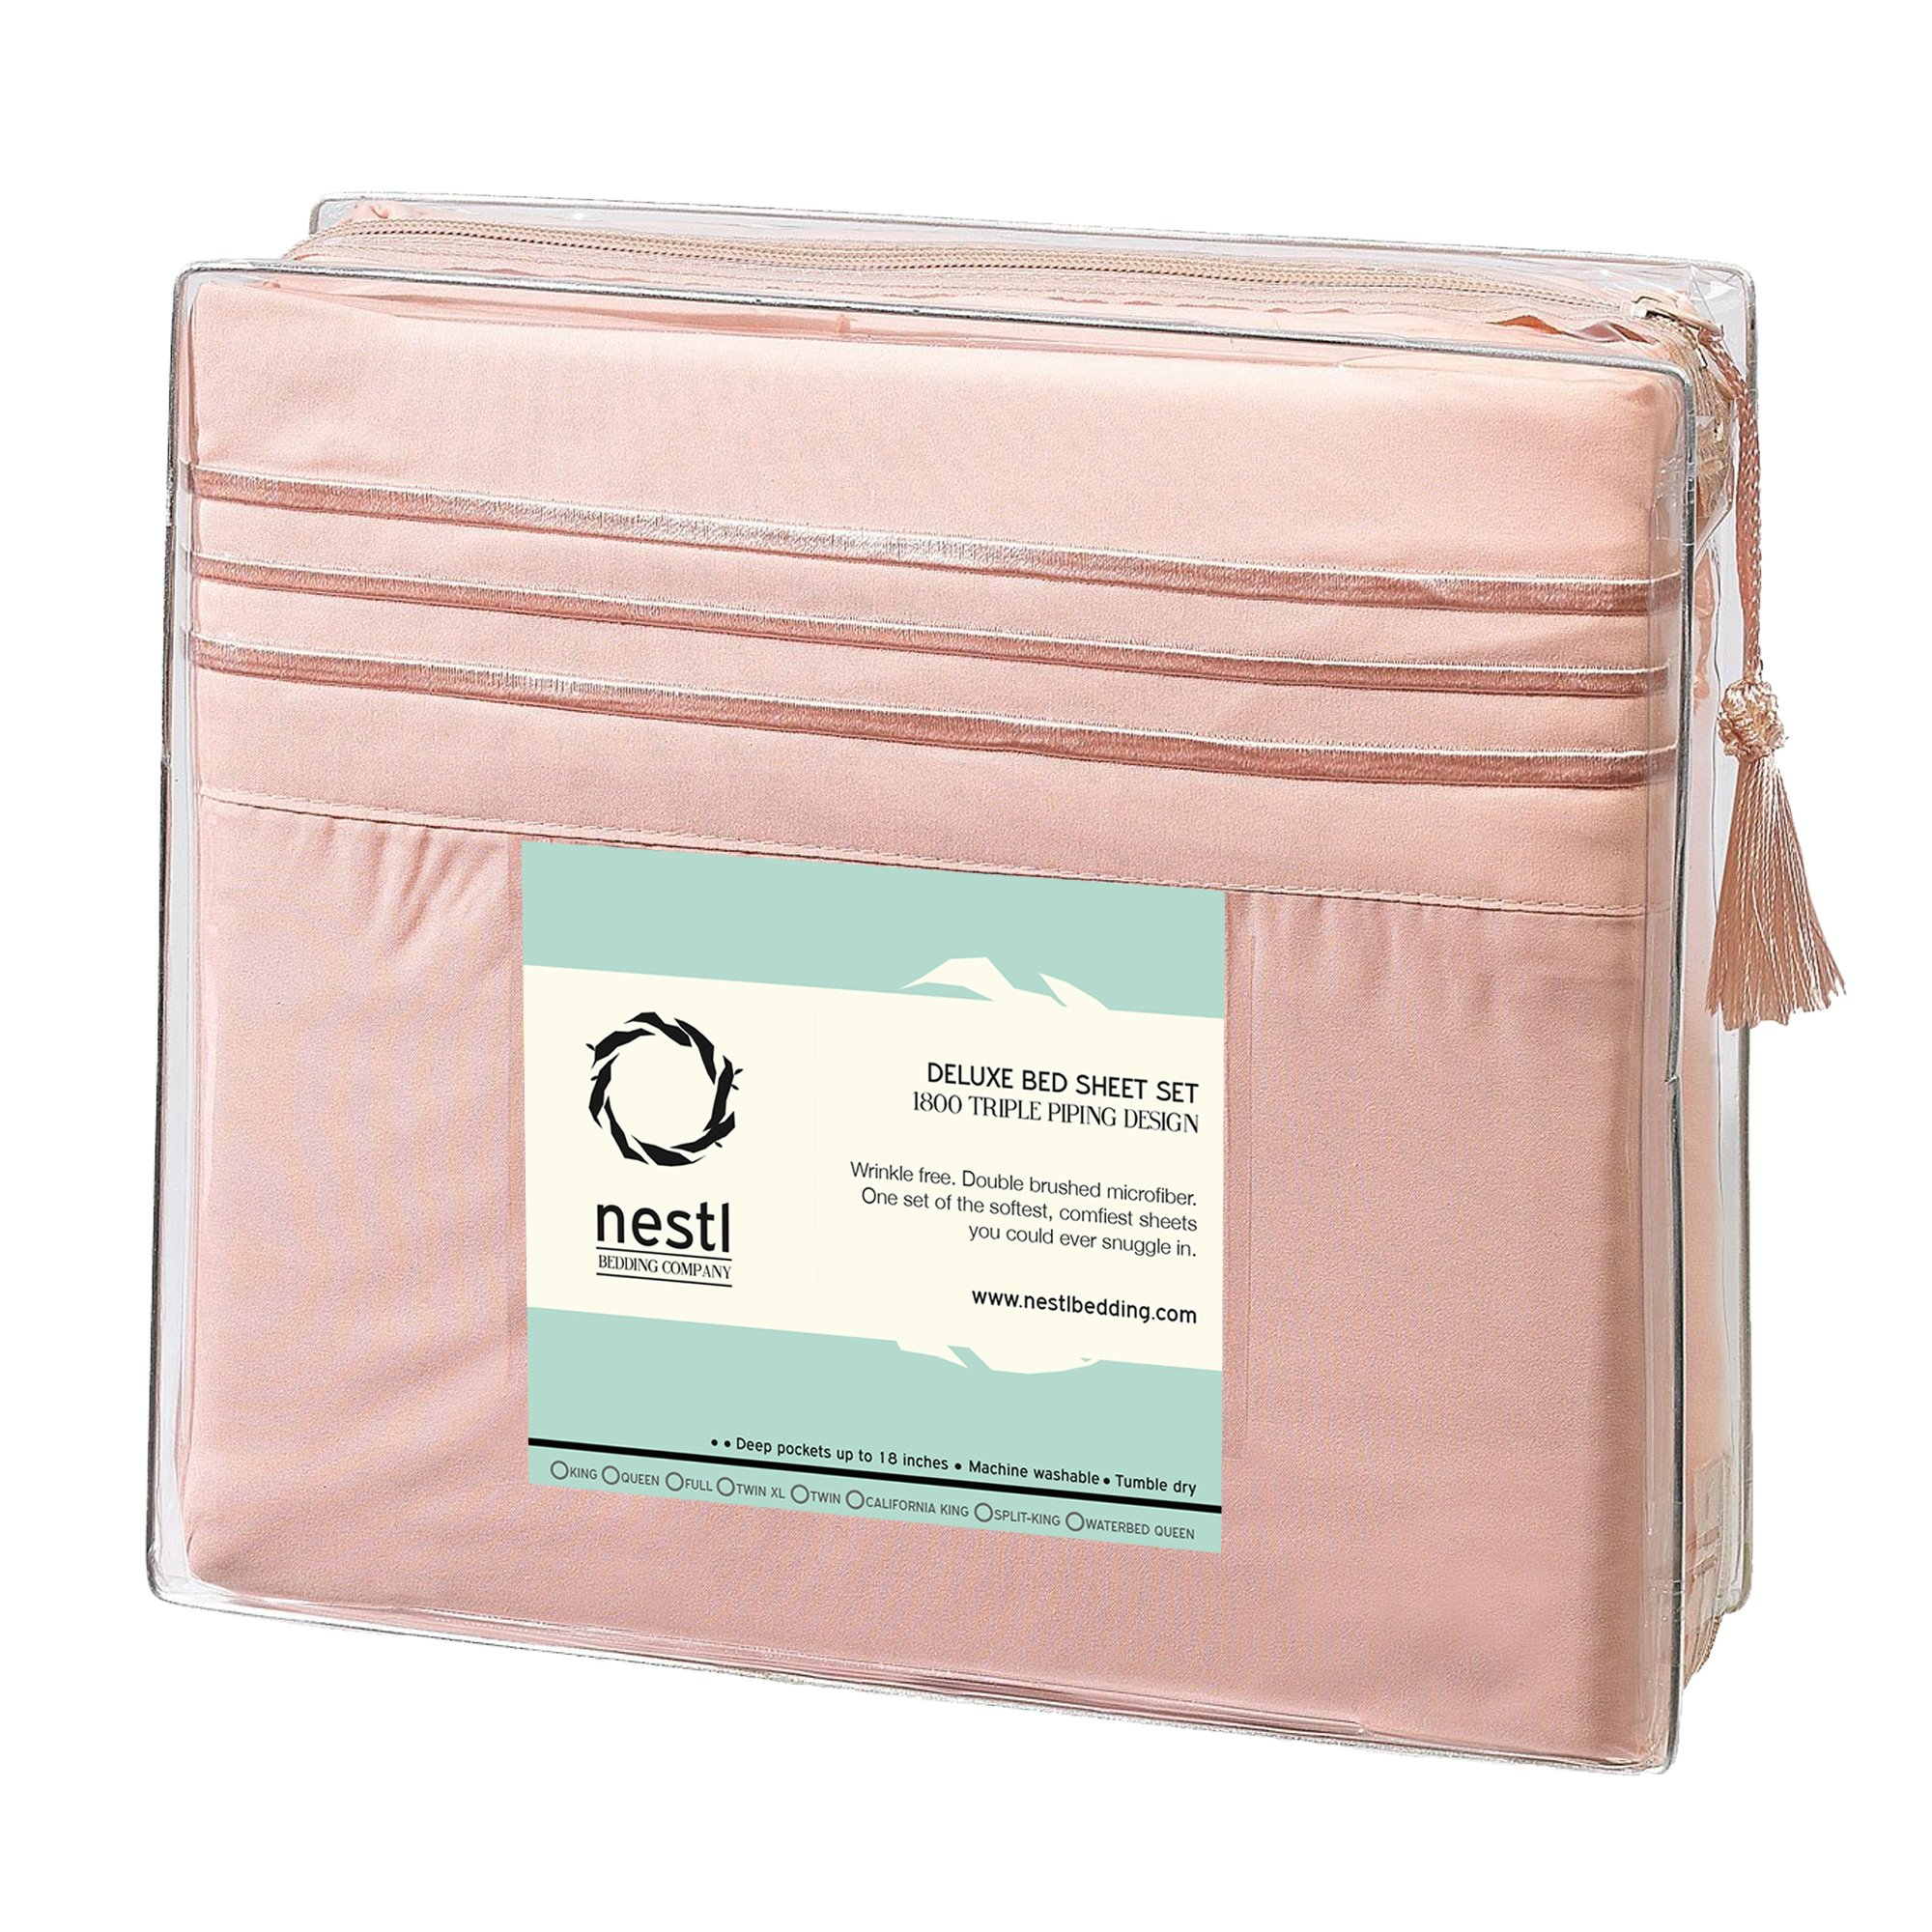 Full Size Bed Sheets Set Peach, Bedding Sheets Set on Amazon, 4-Piece Bed Set, Deep Pockets Fitted Sheet, 100% Luxury Soft Microfiber, Hypoallergenic, Cool & Breathable by Nestl Bedding (Image #7)